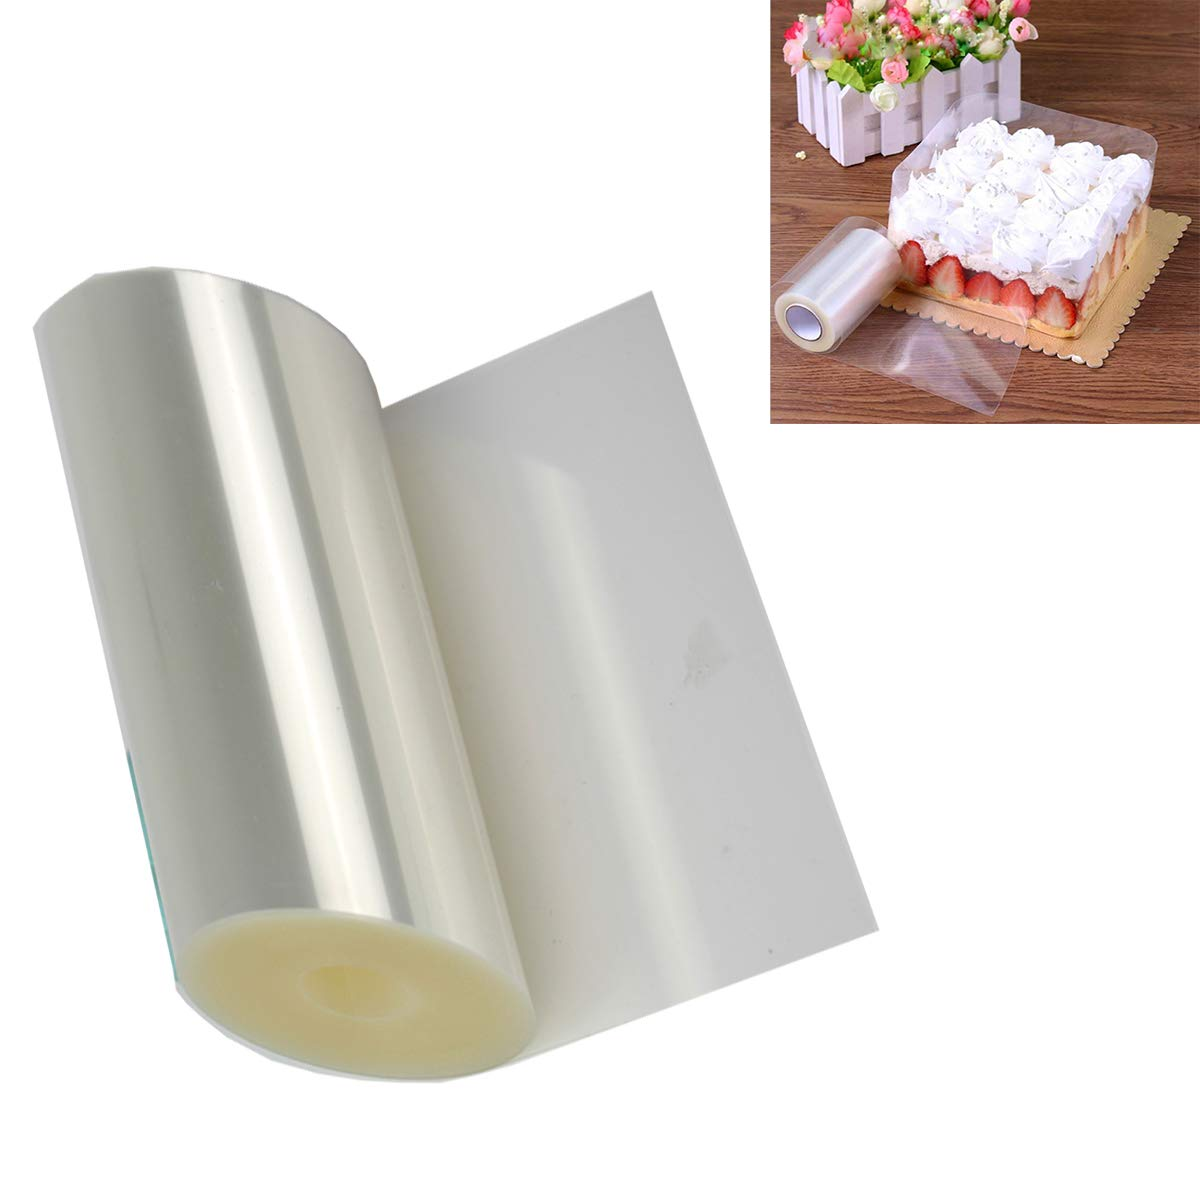 Cake Collars 3.9 x 394inch, Starled Acetate Rolls, Clear Cake Strips, Transparent Cake Rolls, Mousse Cake Acetate Sheets for Chocolate Mousse Baking, Cake Decorating (1 Roll)